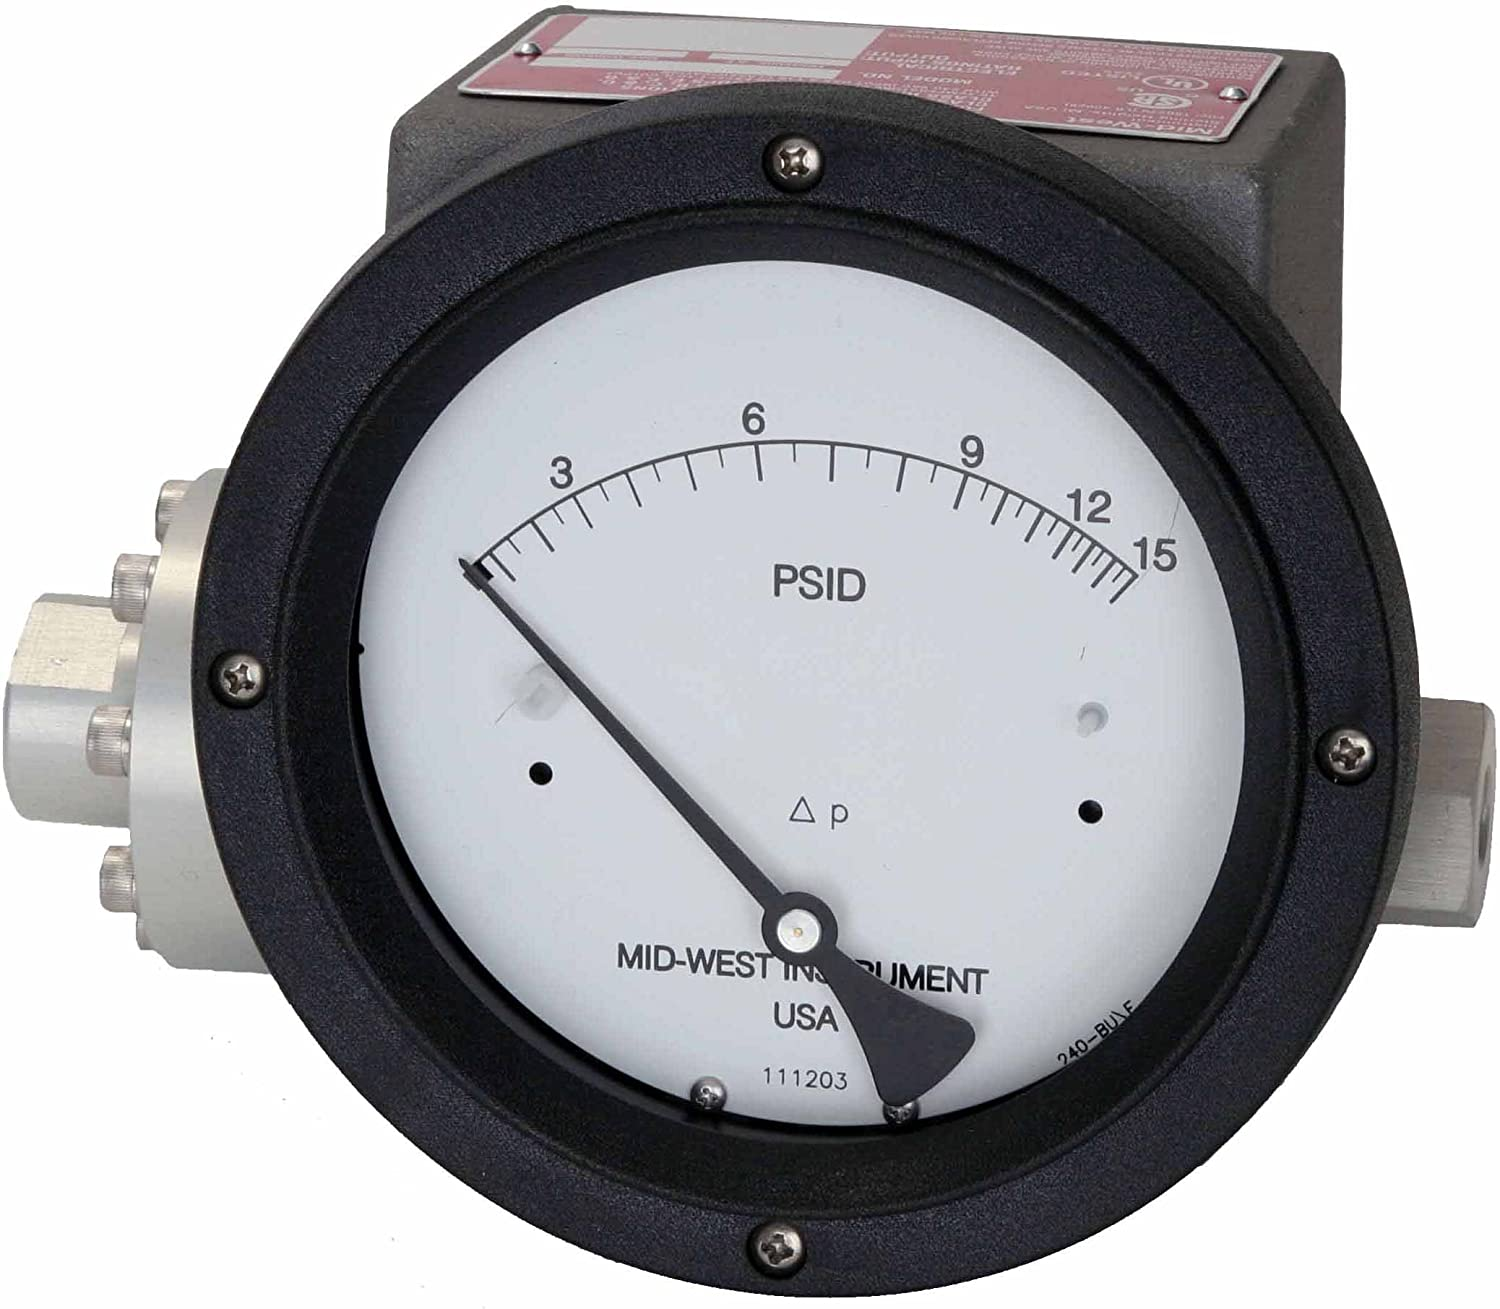 4-1//2 Dial 1 Diaphragm Type Mid-West 240-SC-02-O -30P Differential Pressure Gauge with 316 Stainless Steel Body and 316 Stainless Steel//Ceramic Internals 3//2//3/% Full Scale Accuracy 1 Control Switch in NEMA 7 Class1-Div.1 Explosion Proof Enclosure JAA